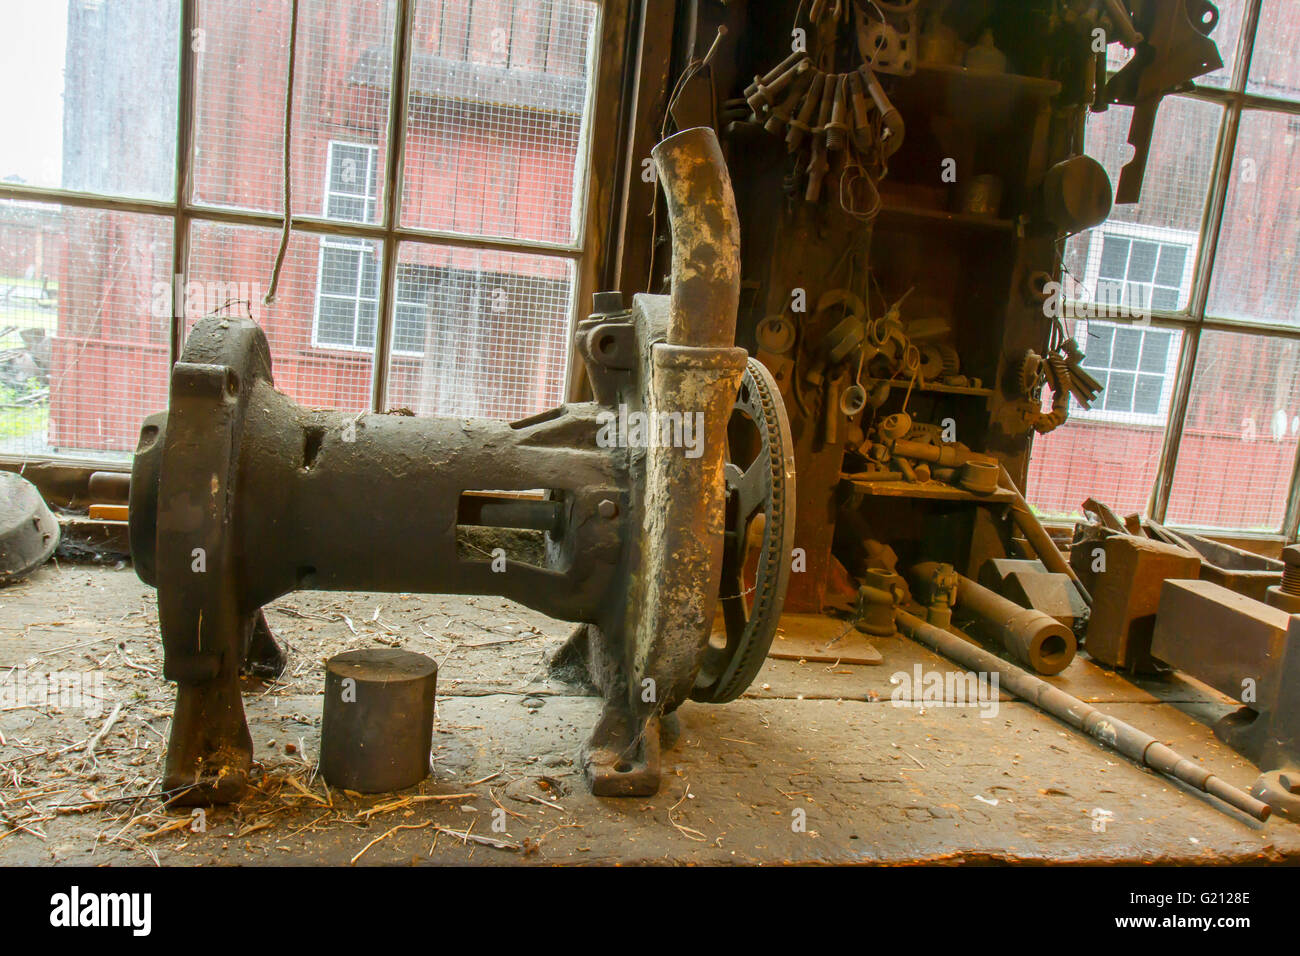 Vintage Tools On Workbench In Old Machine Shop Stock Photo